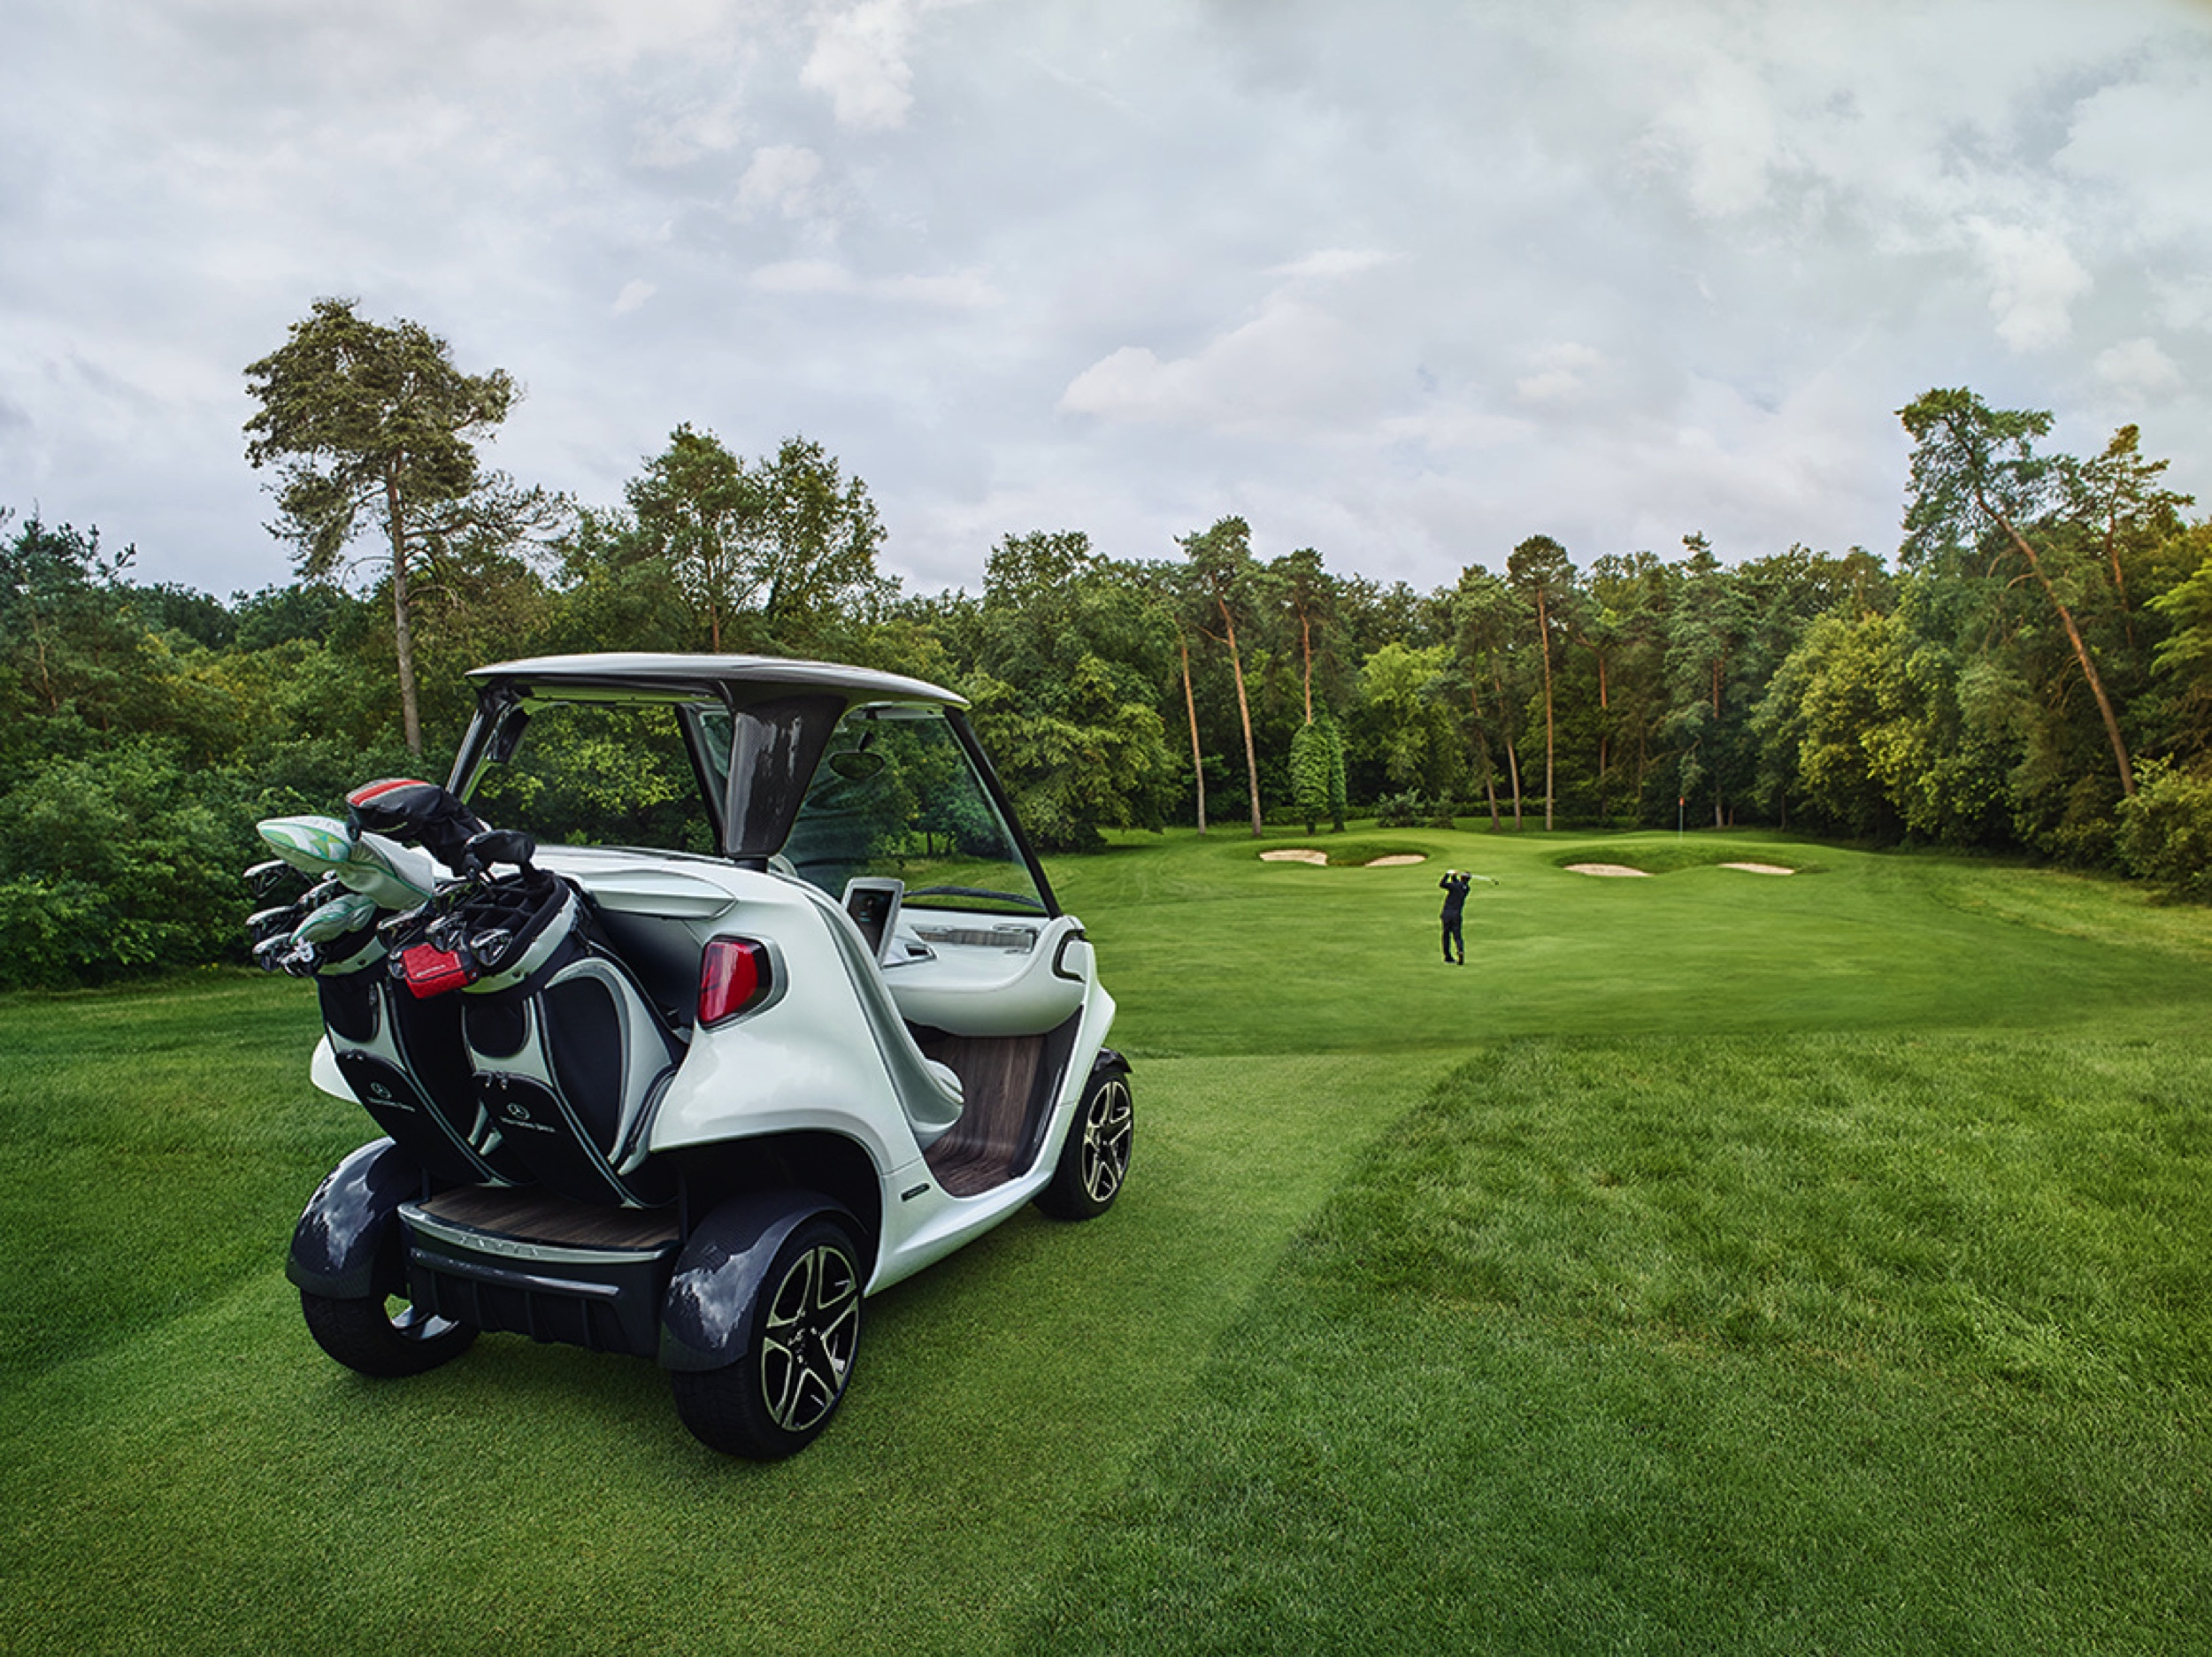 Mercedes-Benz Style Edition Garia Golf Car -6- Autovisie.nl